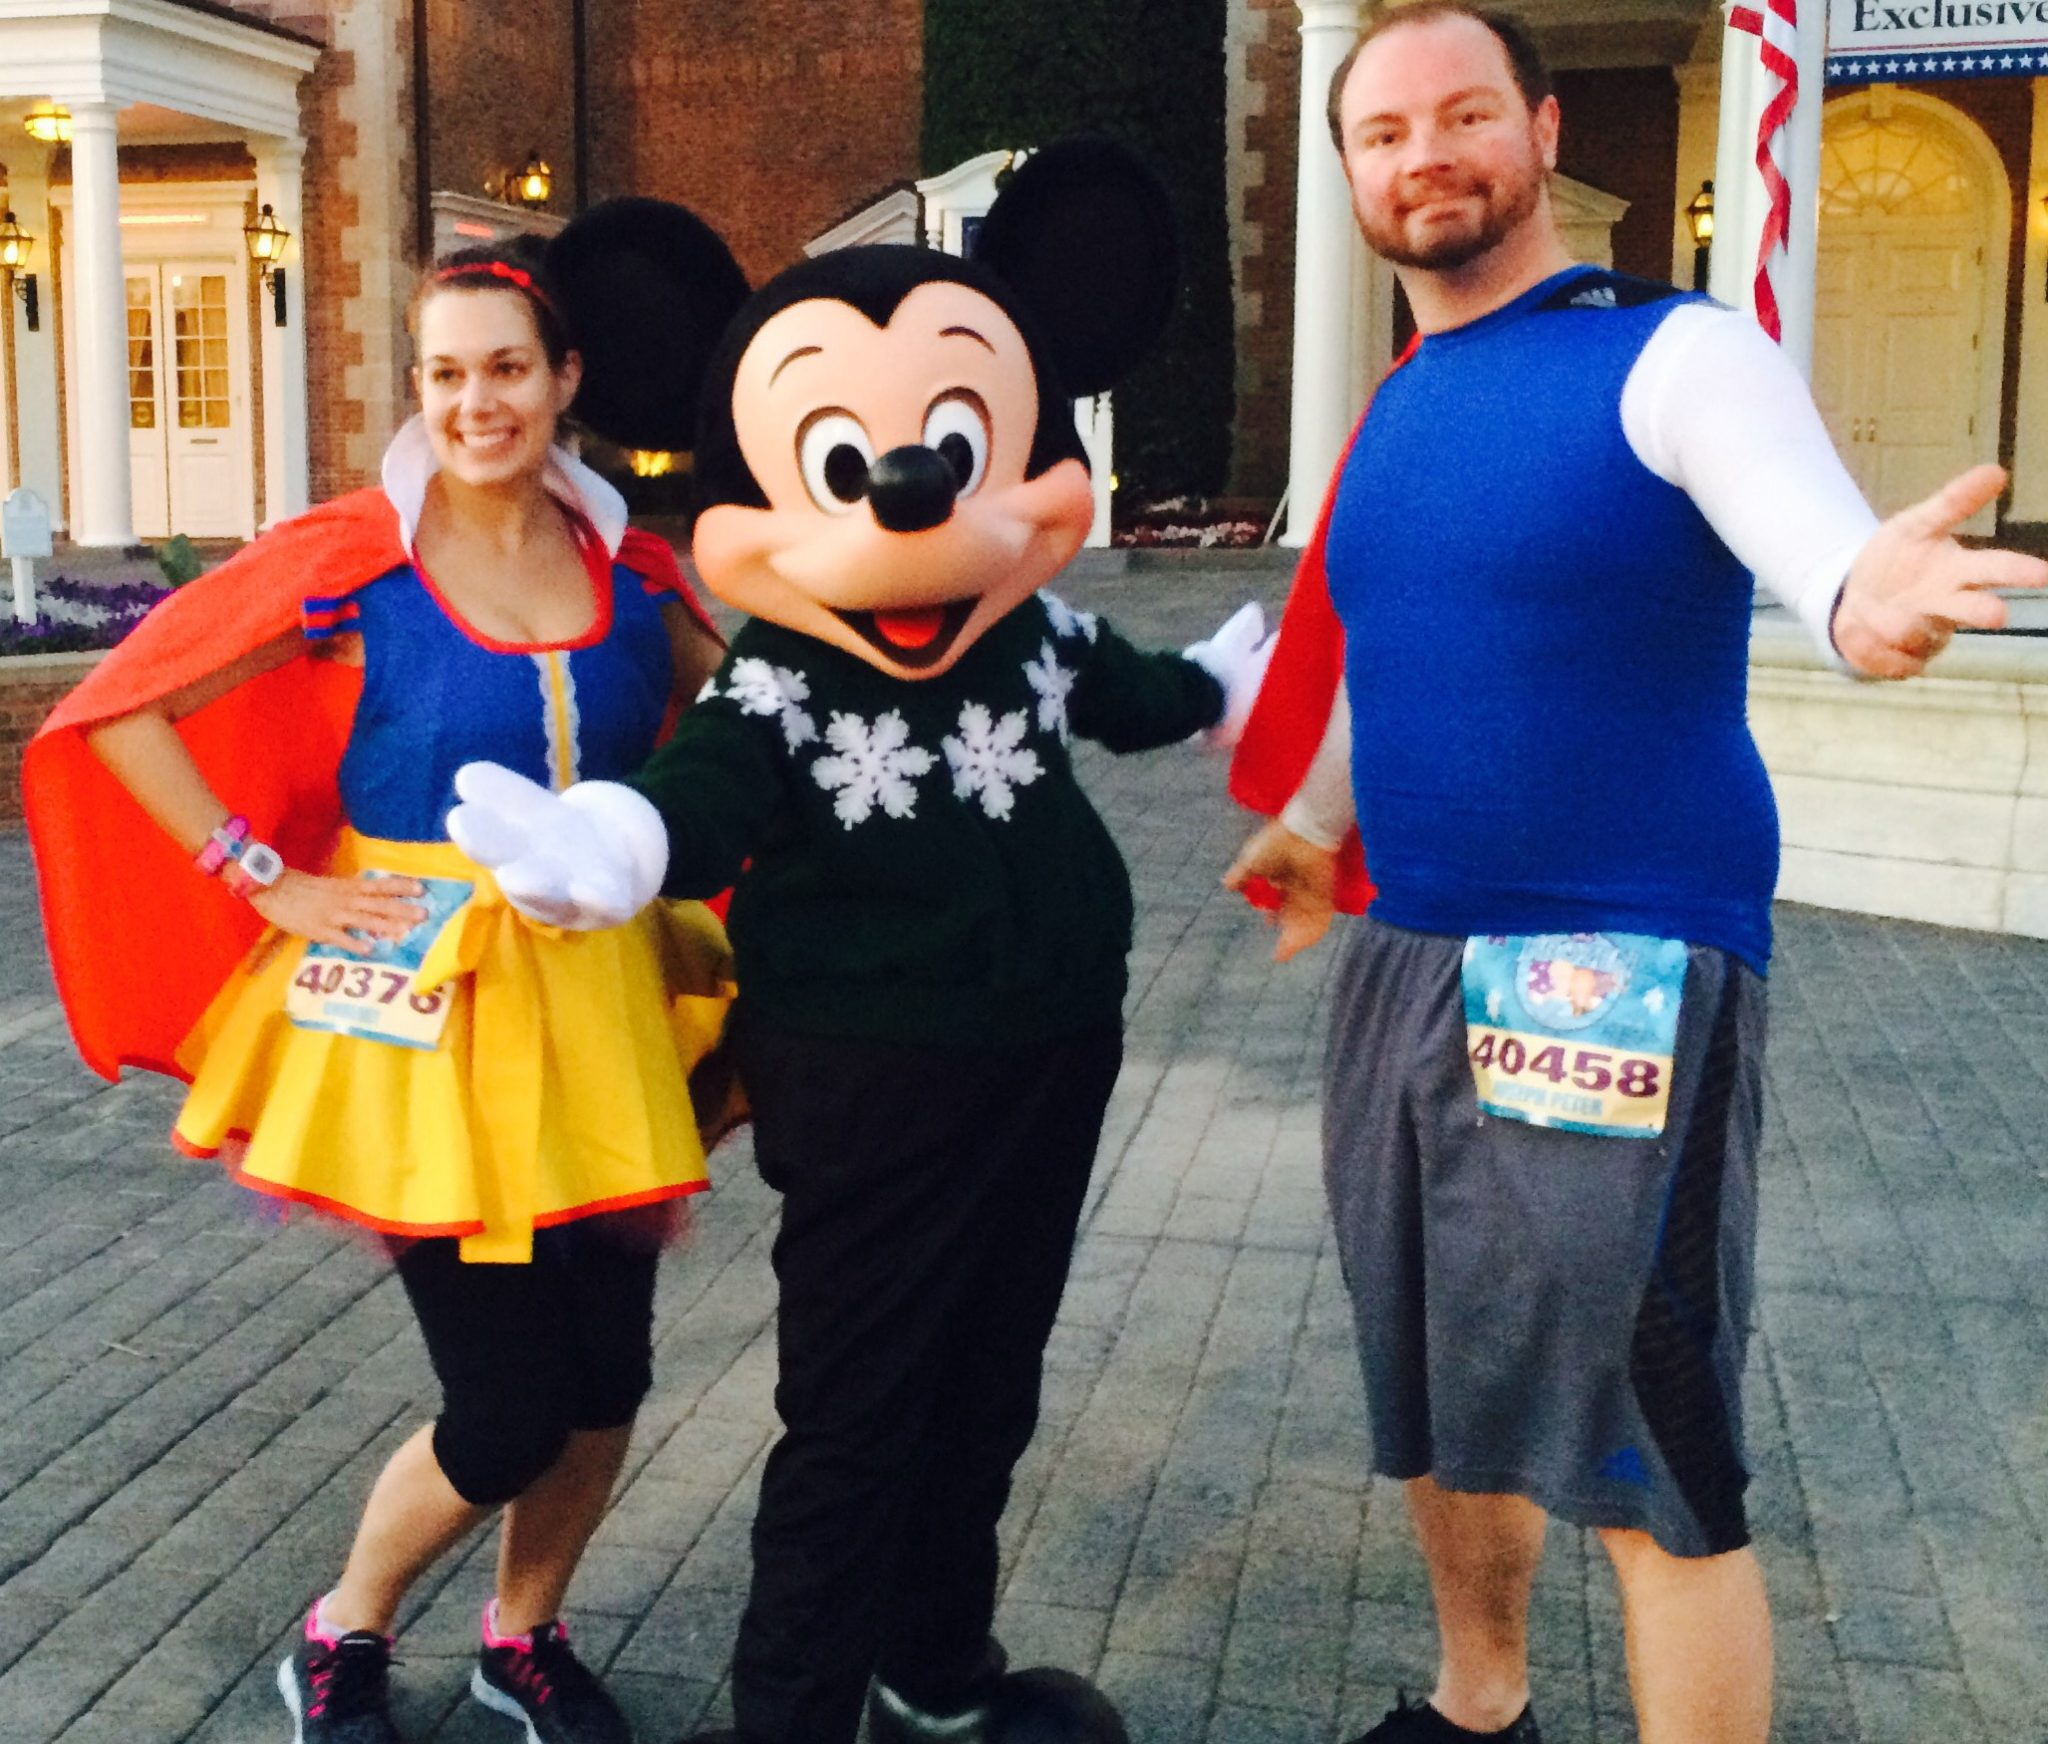 We ran as Snow White and Prince Charming for the Frozen 5k in 2015.